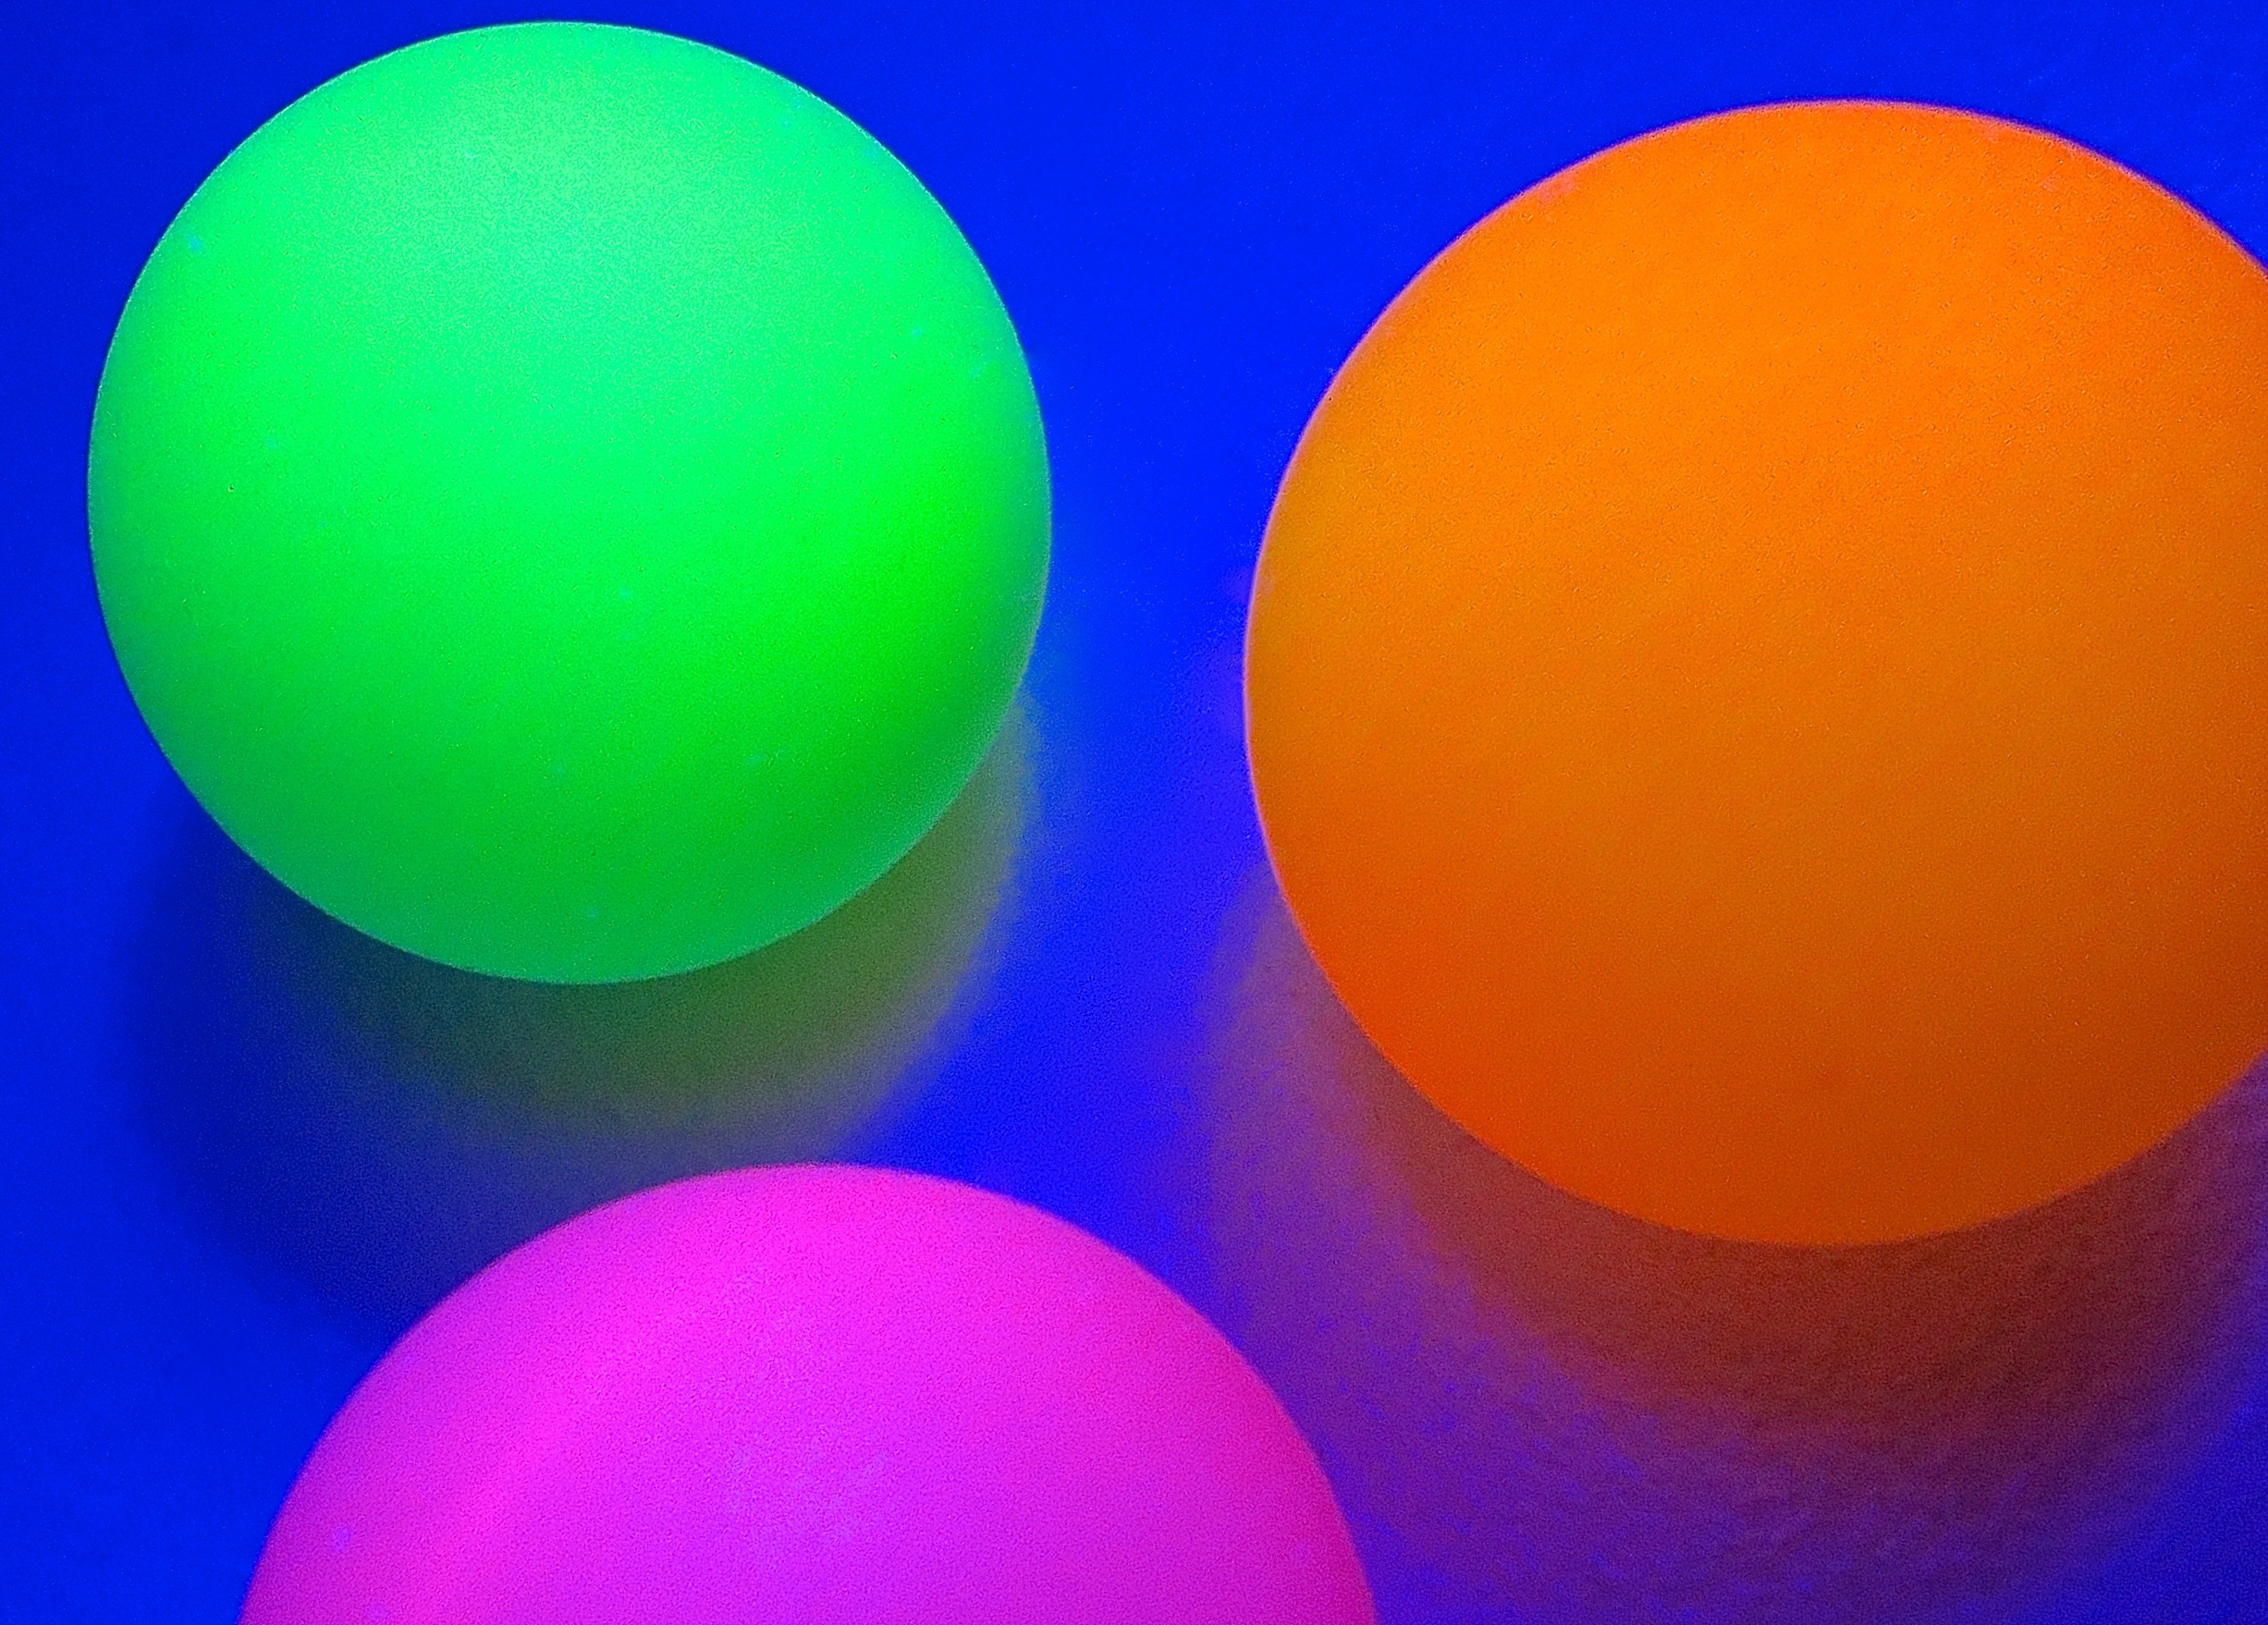 Ping Pong Balls Under Black Light (Dean Hochman)